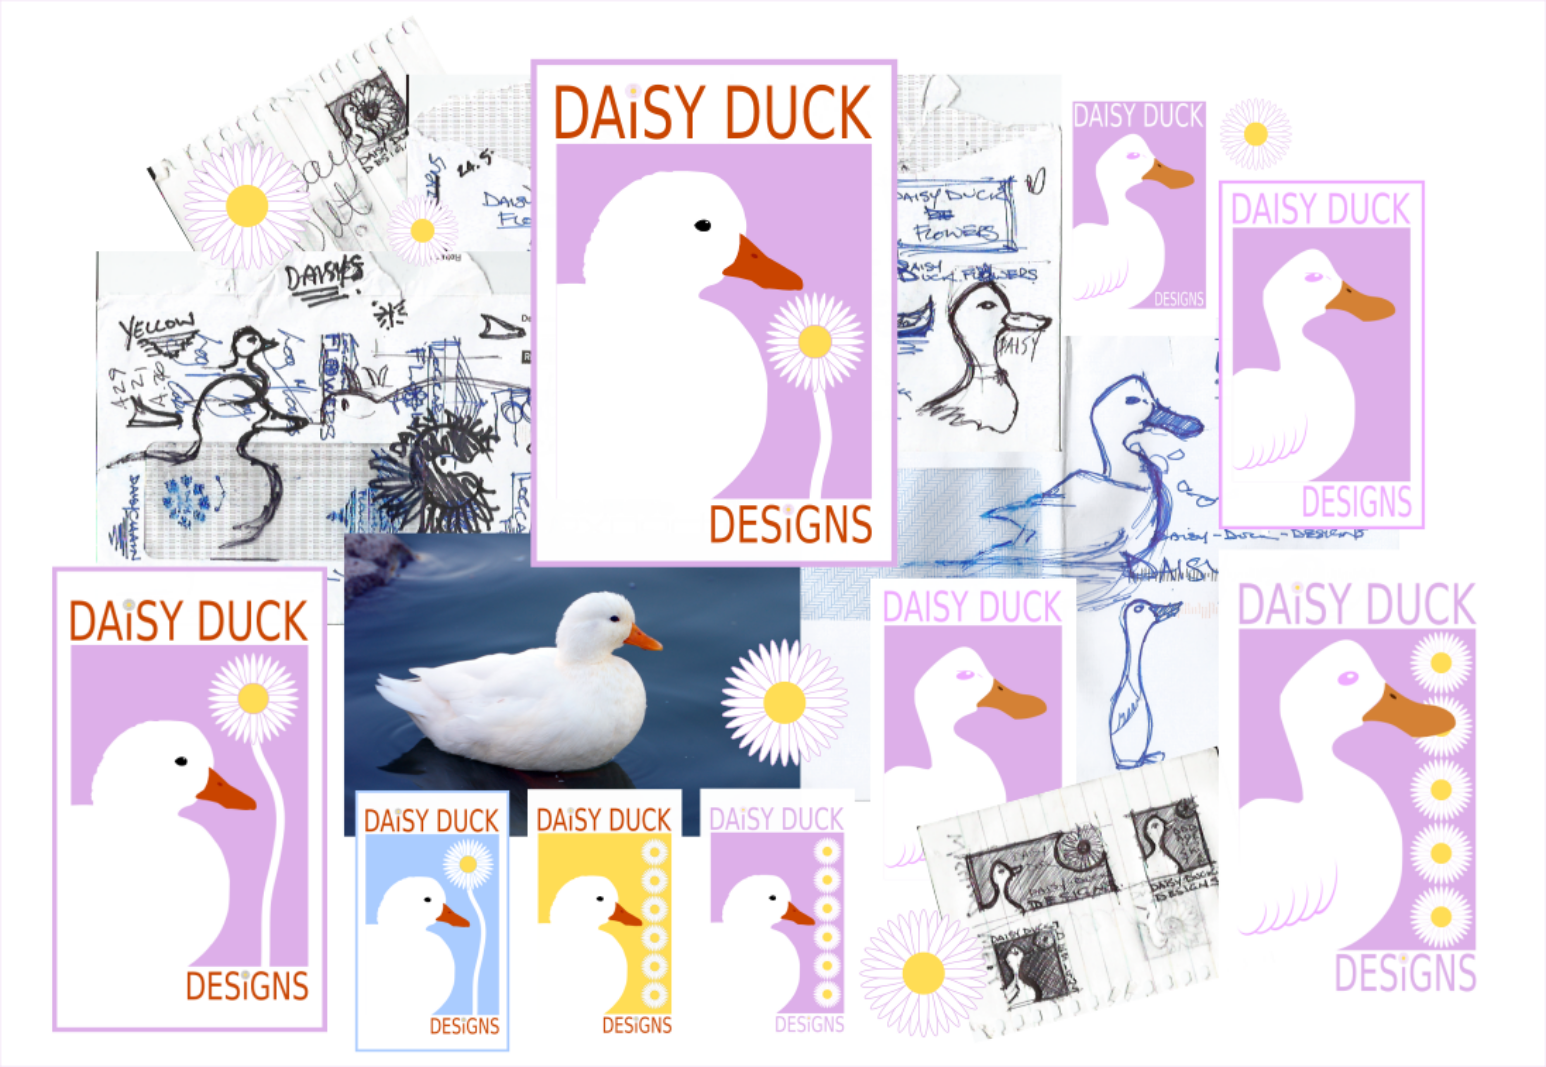 https://www.facebook.com/Daisy-Duck-Designs-1089152277788315/?ref=br_rs